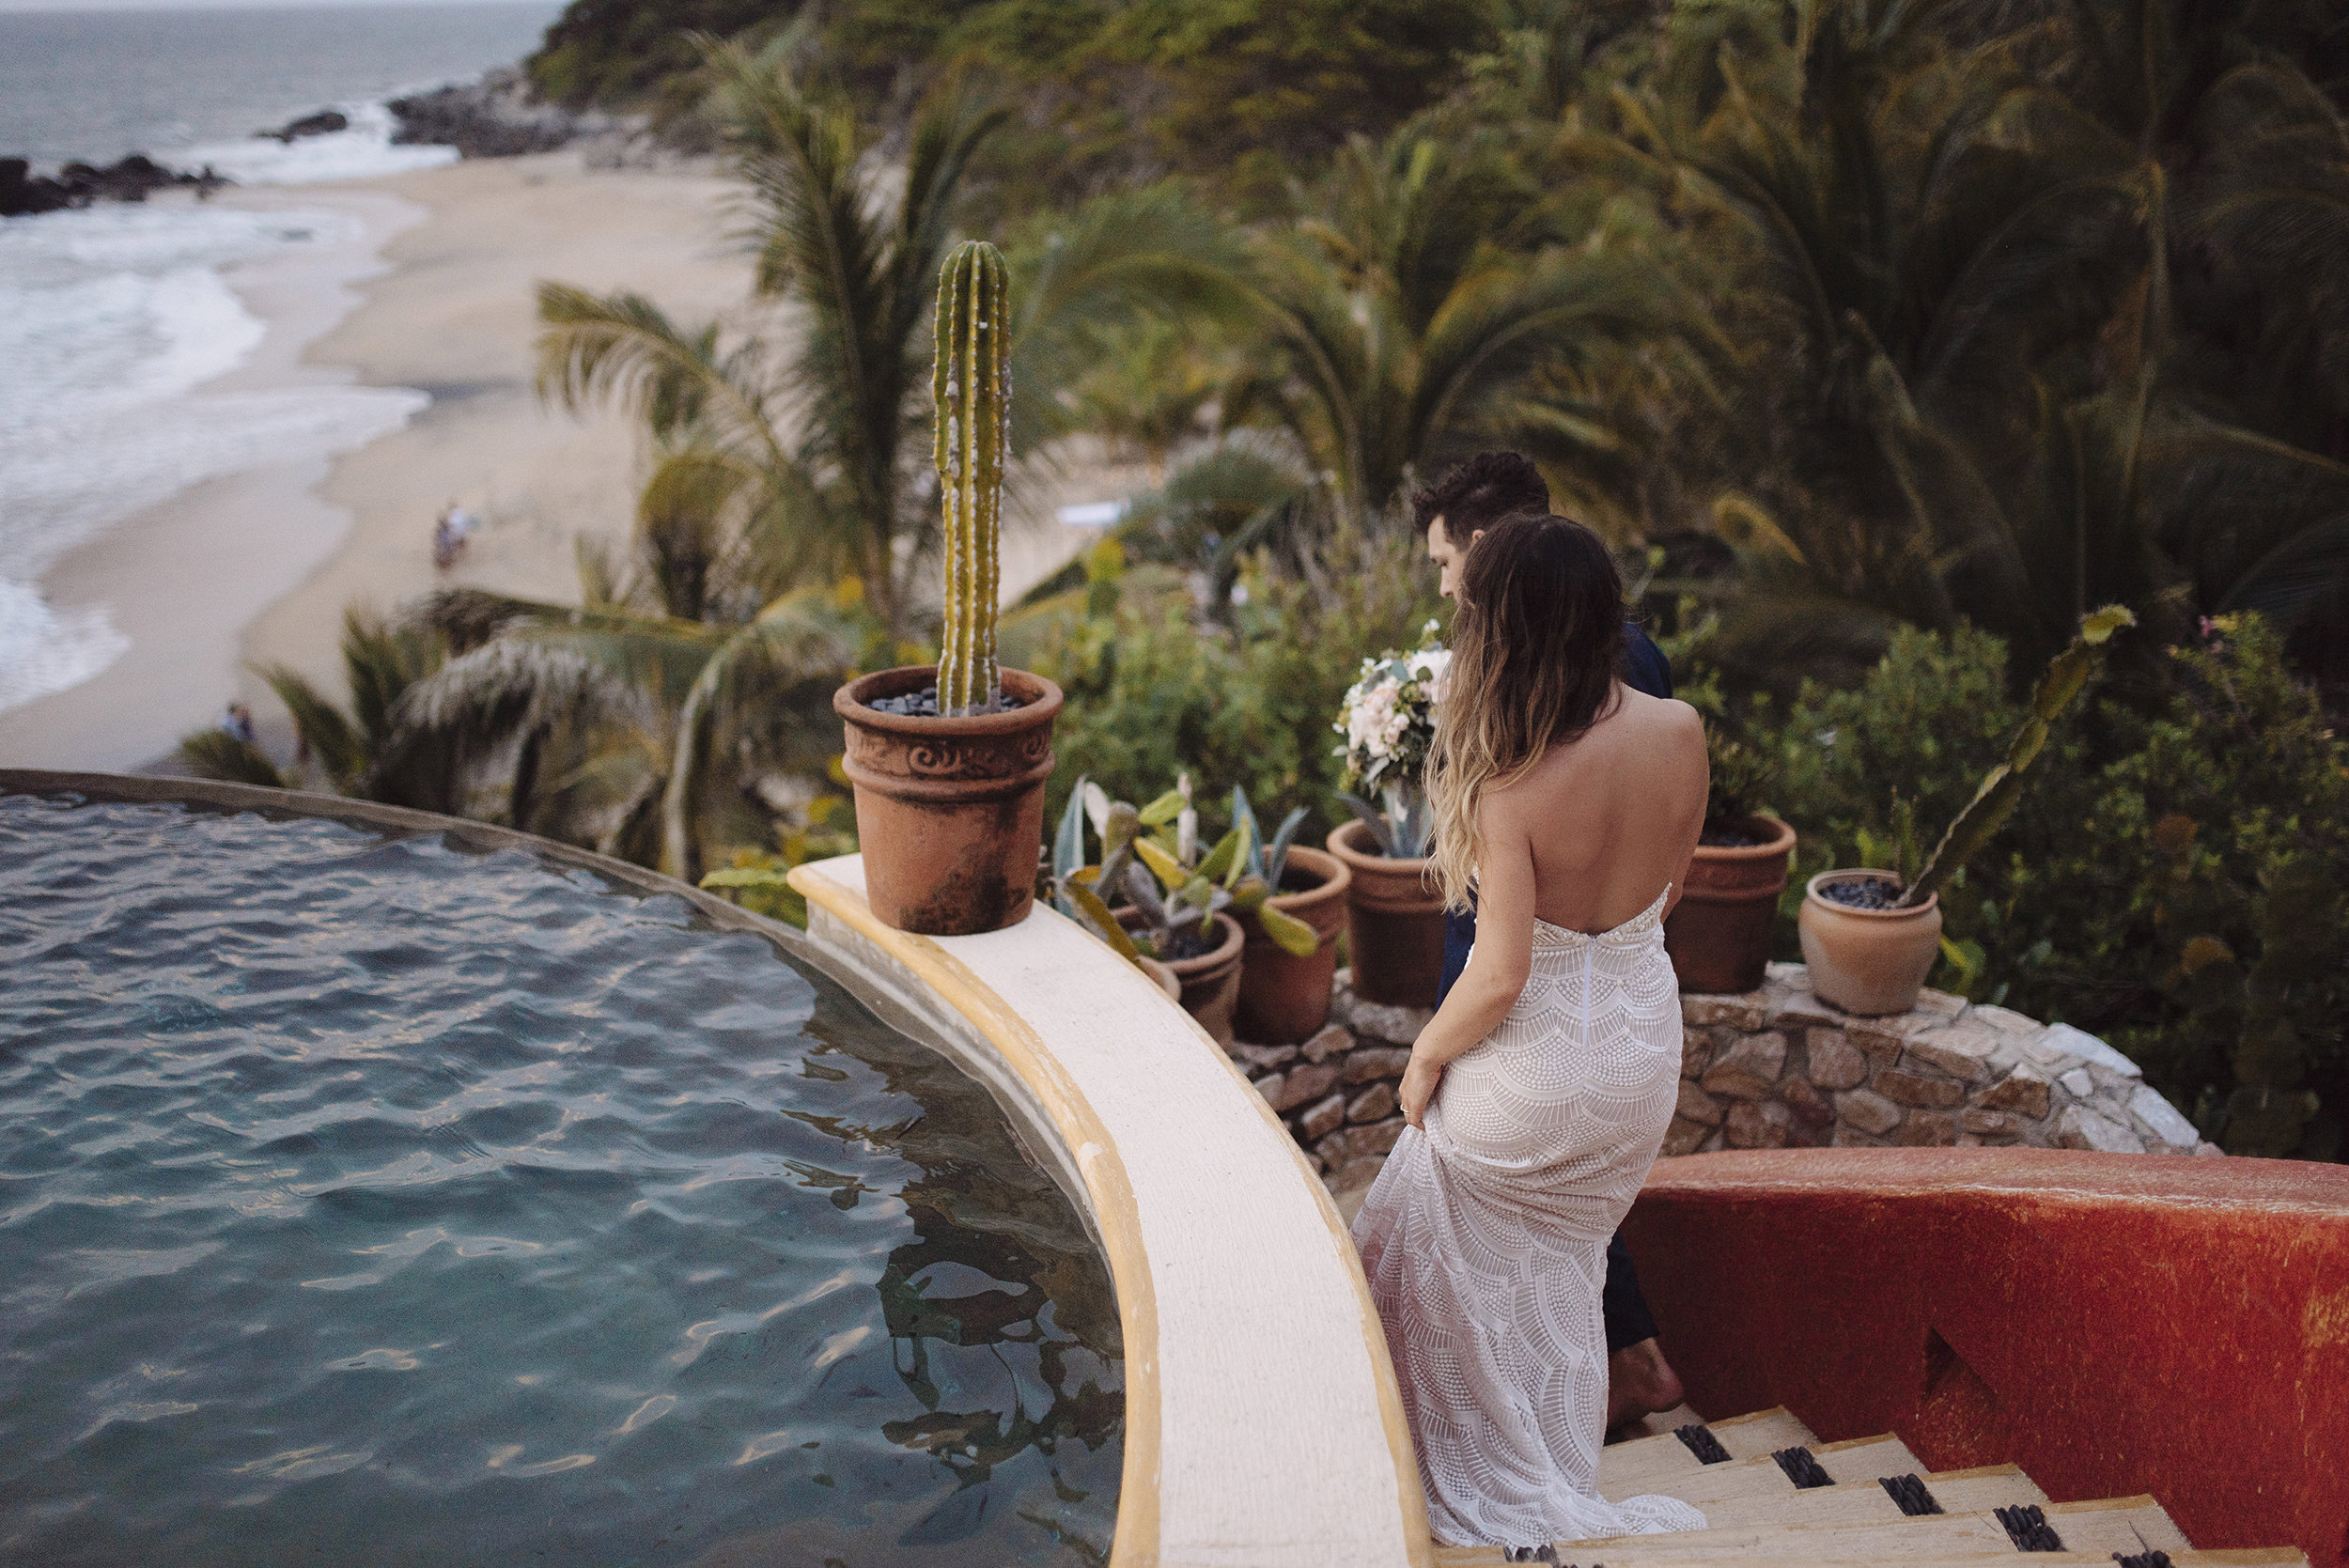 Colby-and-Jess-Intimate-Destination-Wedding-Sayulita-Puerto-Vallarta-Mexico189.jpg